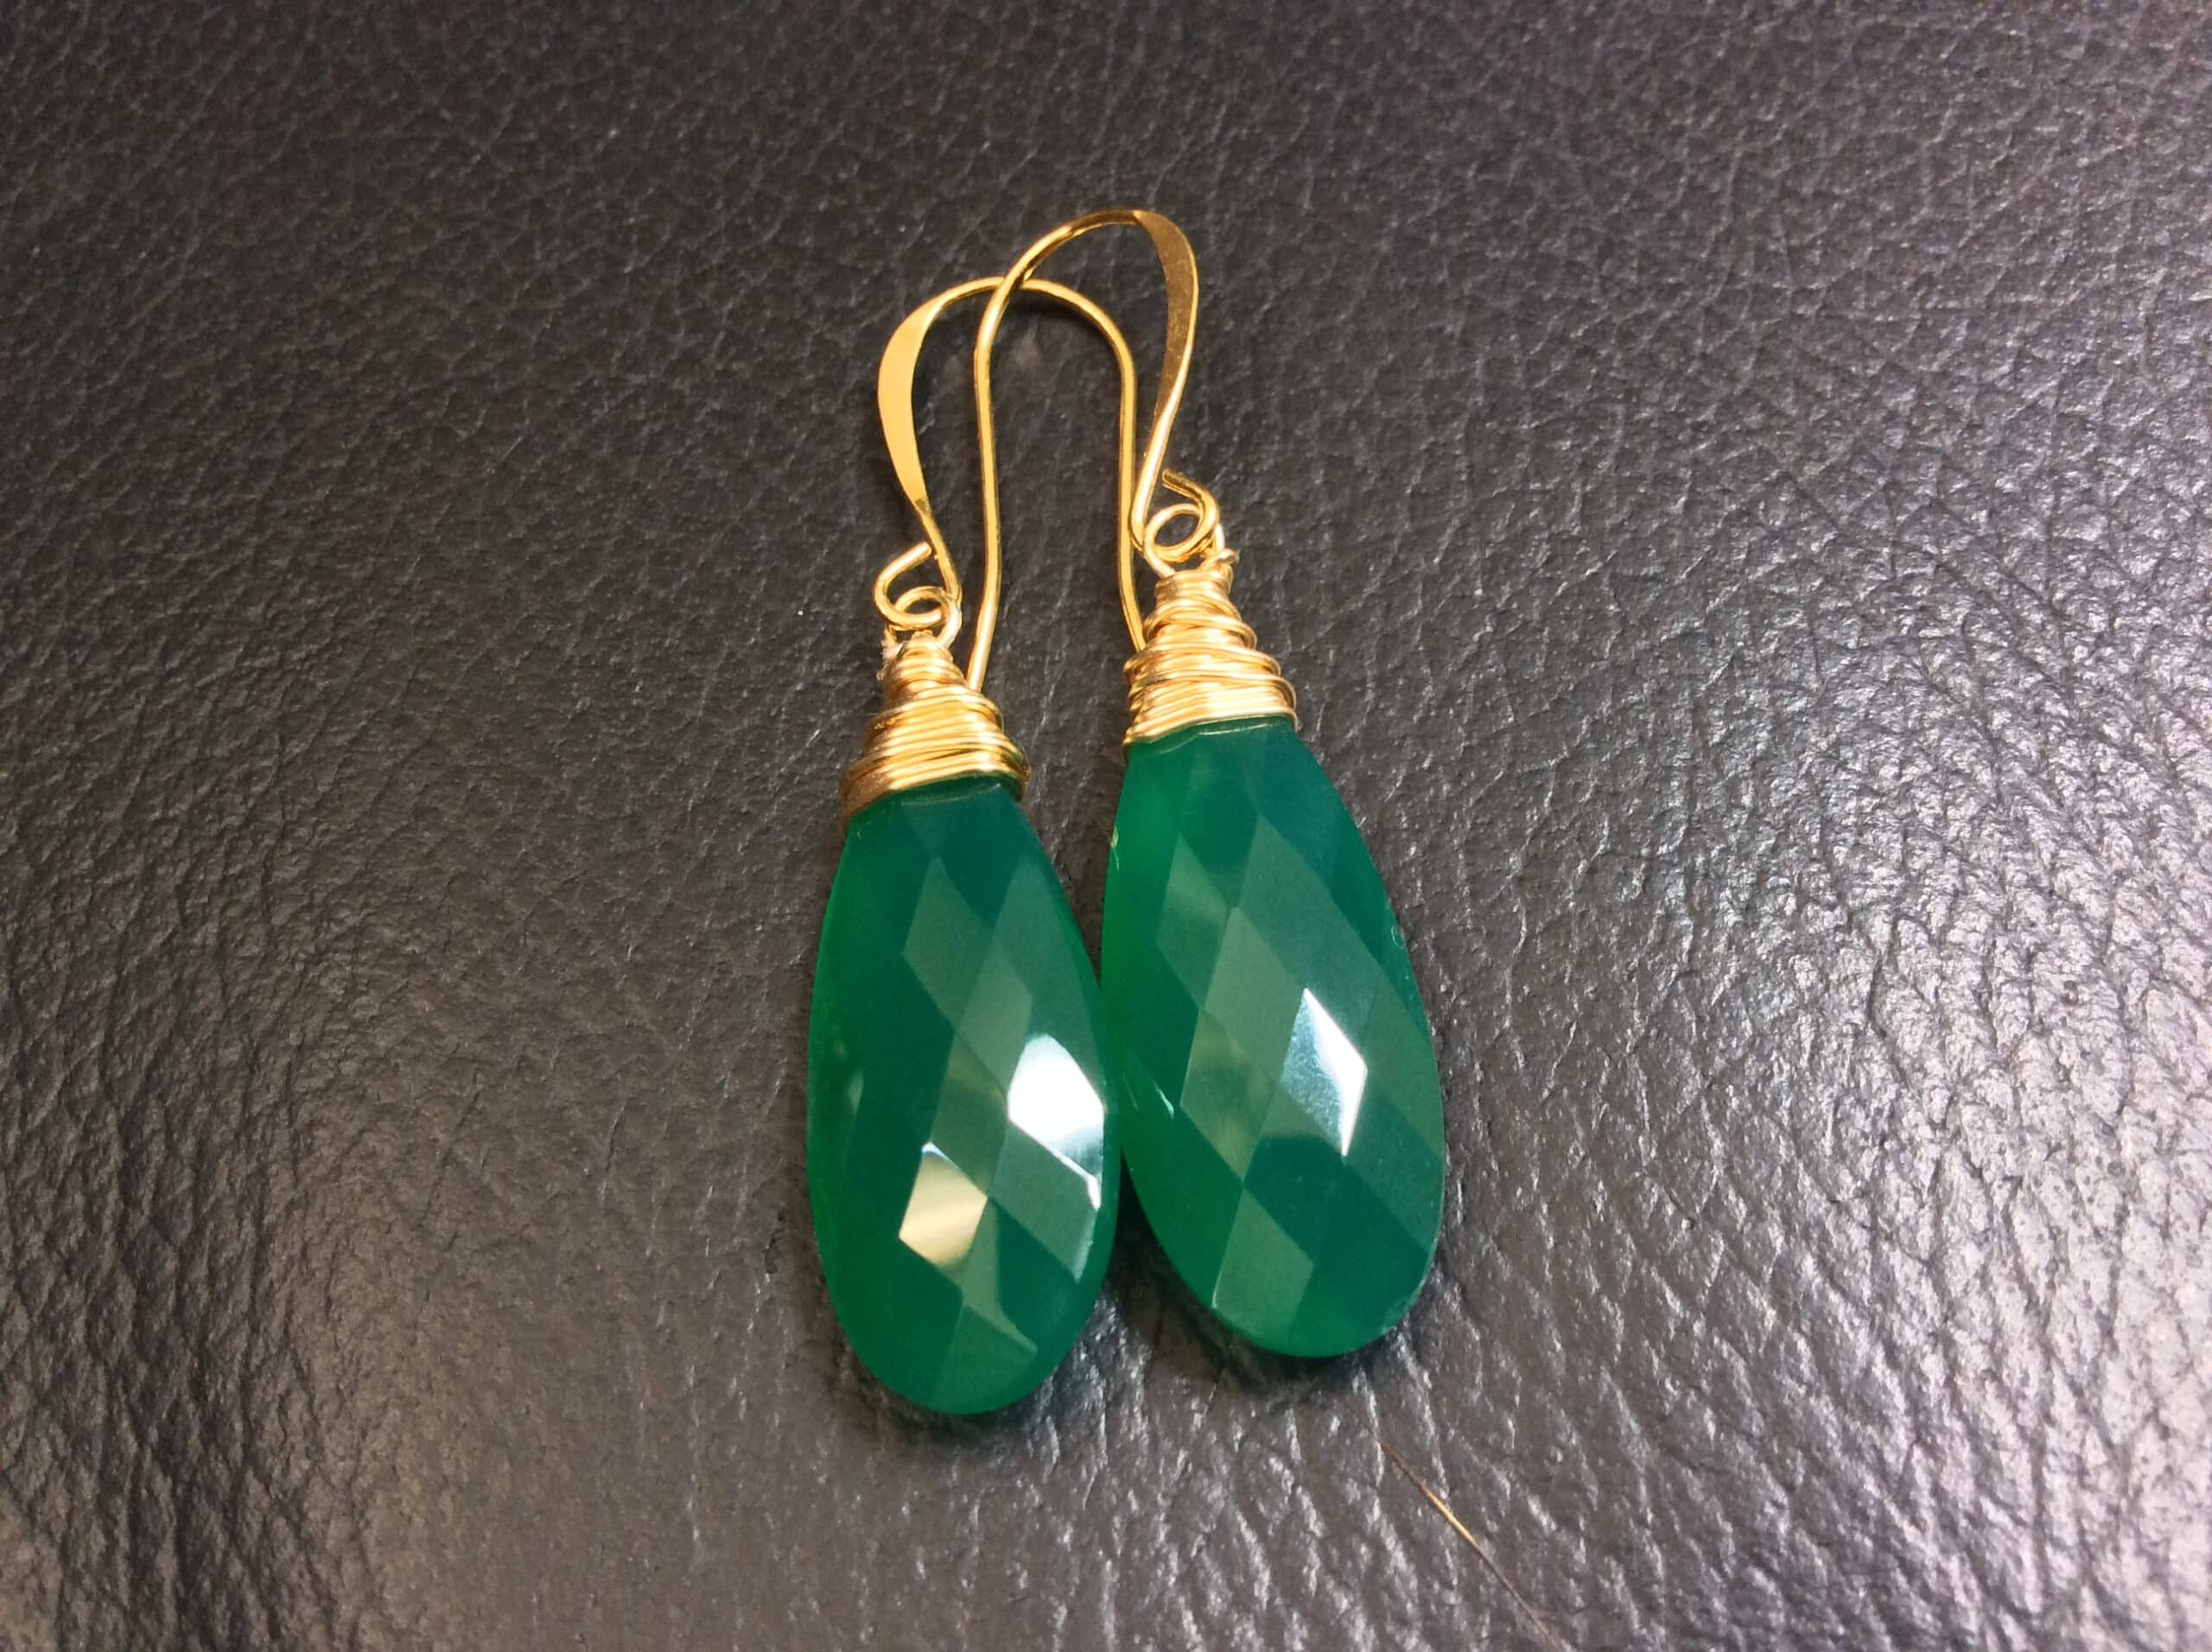 Green Onyx Earrings With 14k Gold Filled Wires By Covet And Desire